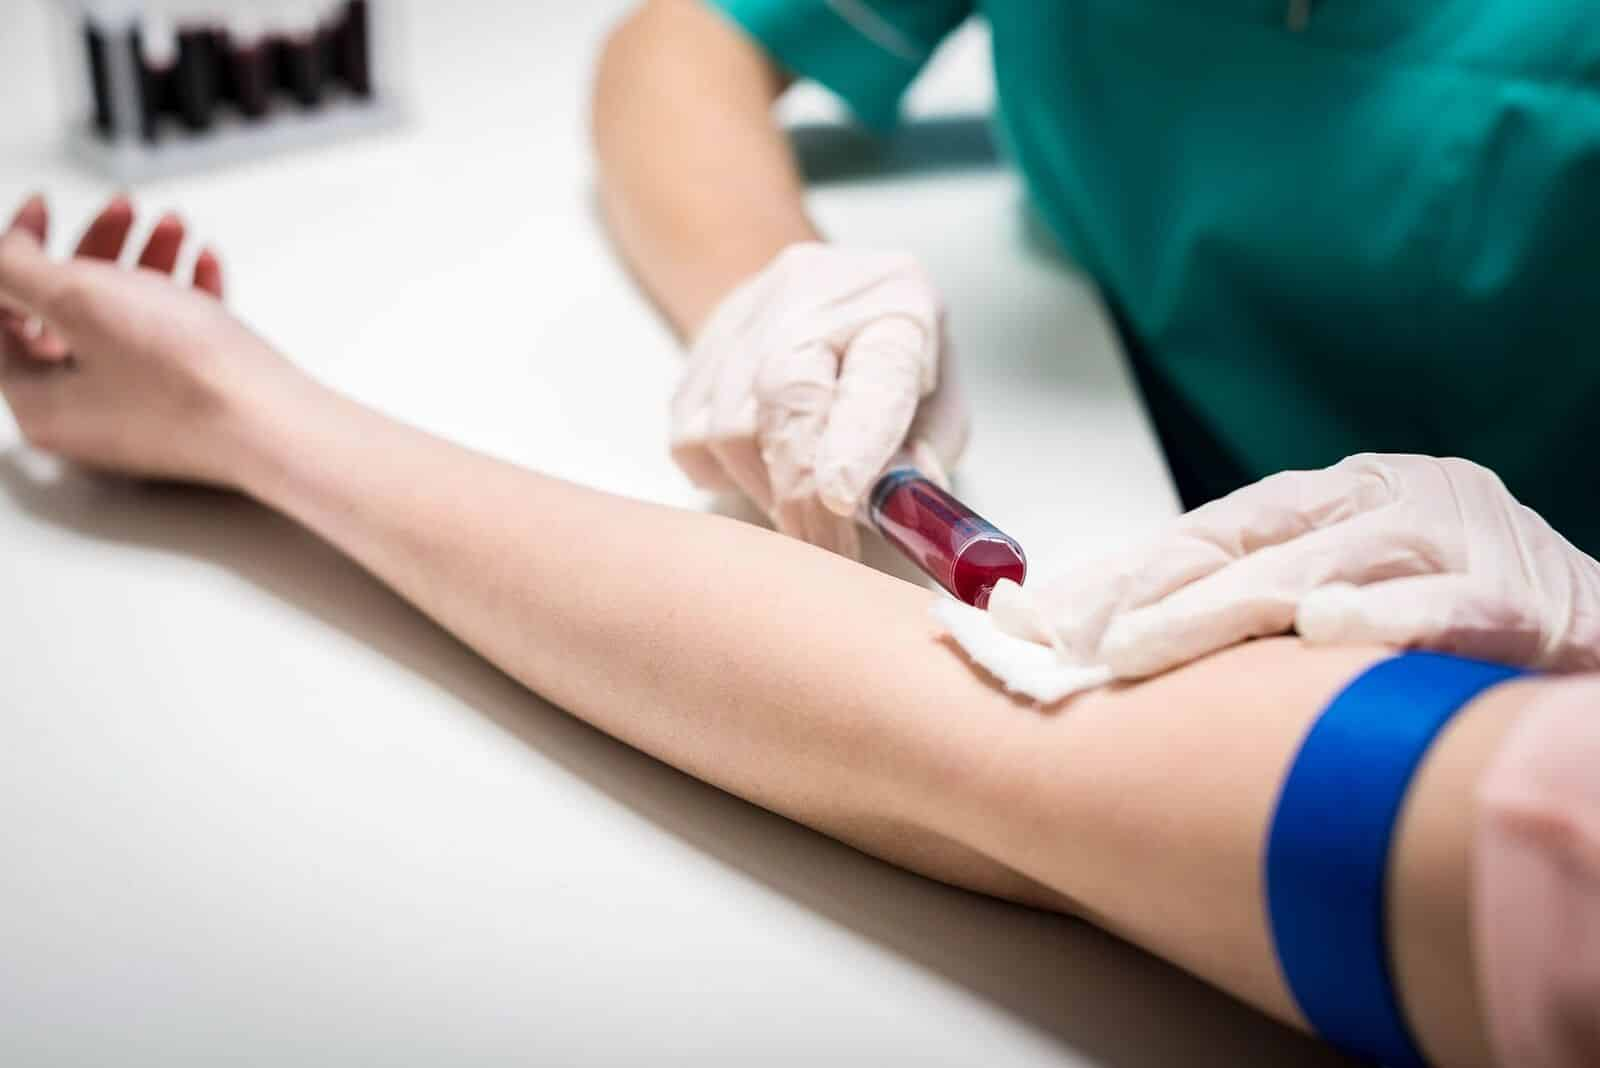 shbg test blood injecting-testing